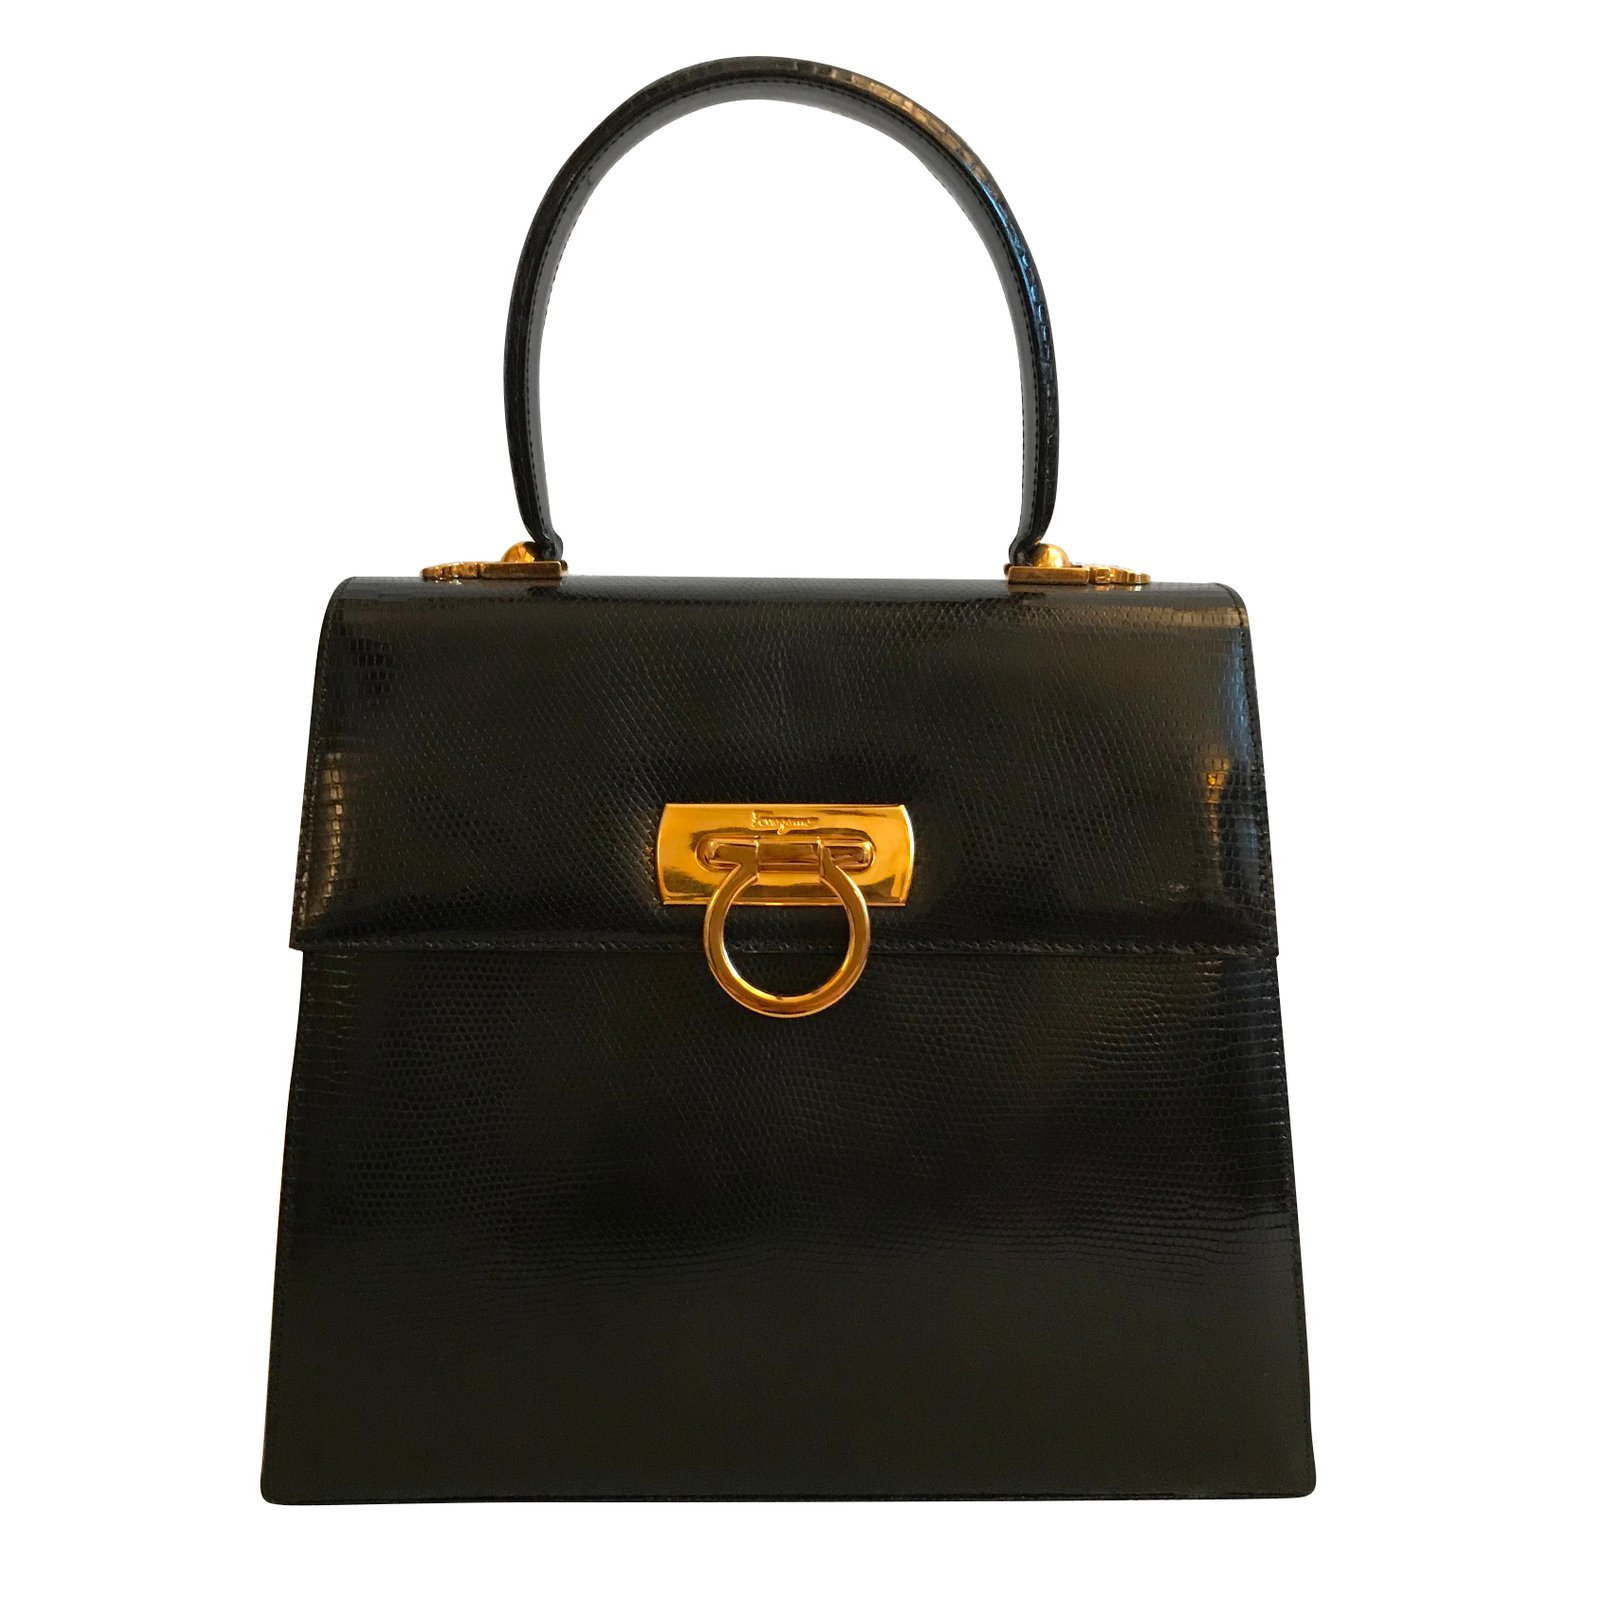 f95b9caa7b Salvatore Ferragamo Handbags Handbags Exotic leather Black ref.51652 ...